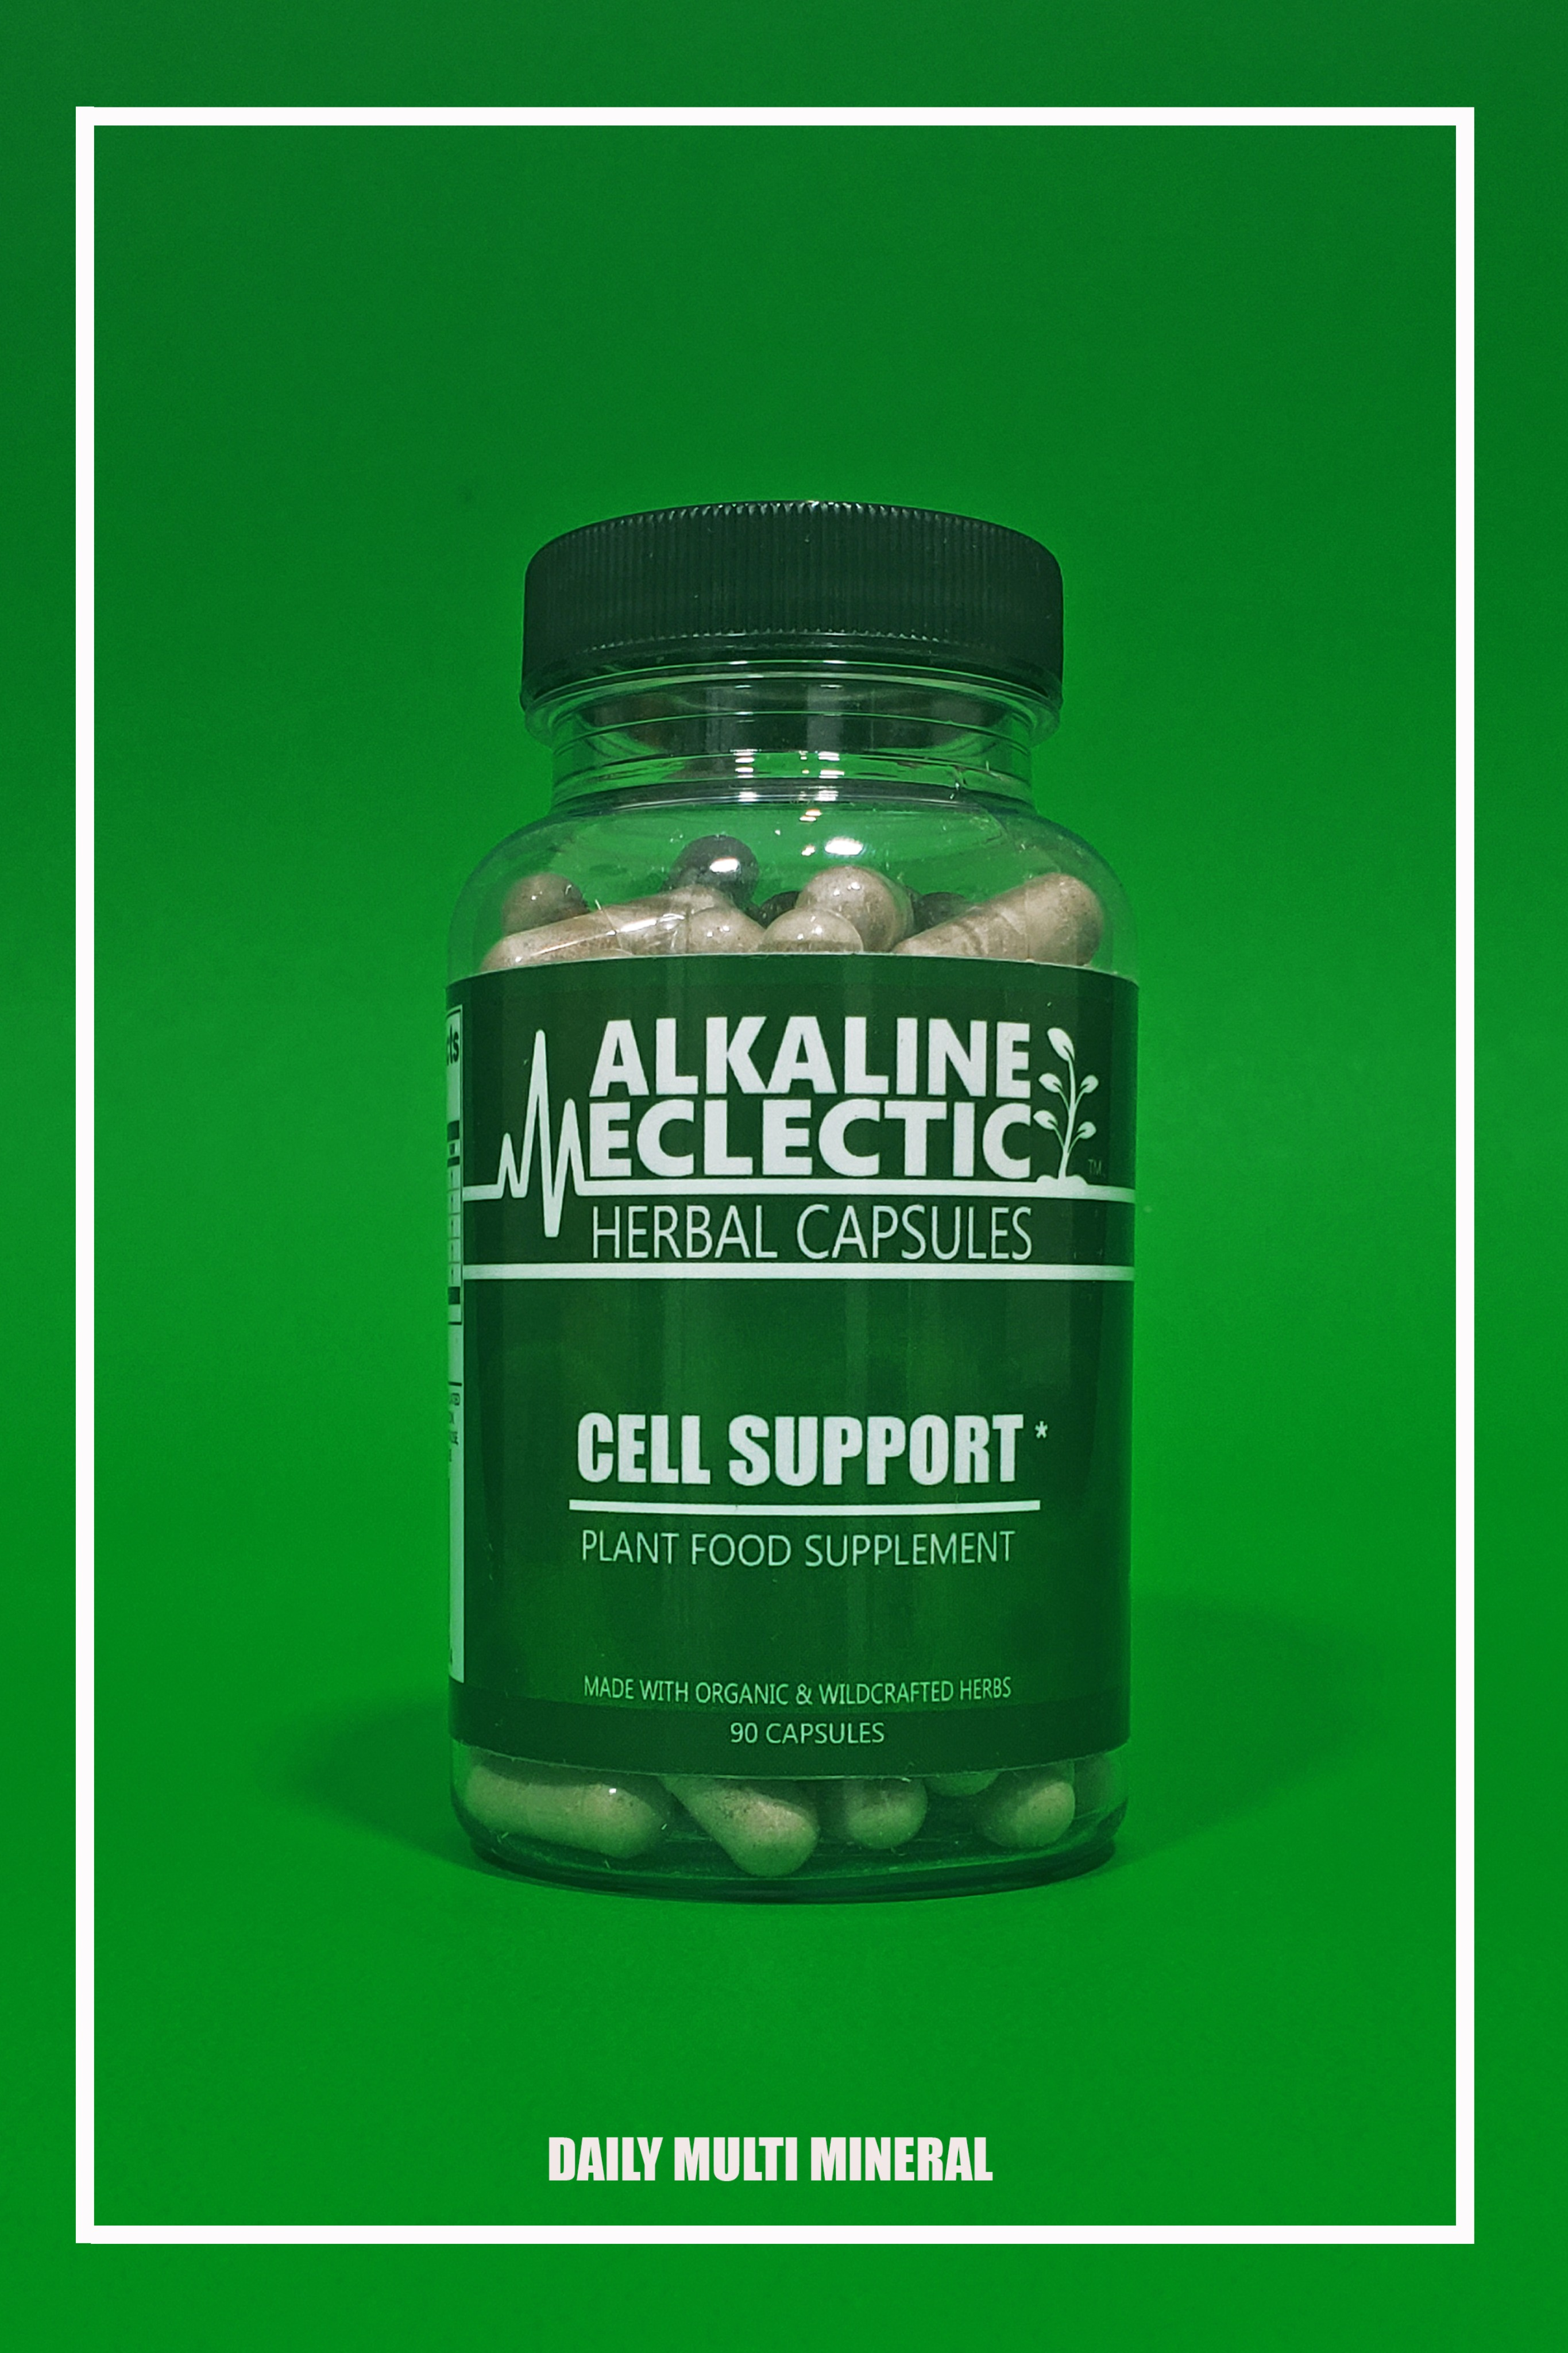 CELL SUPPORT